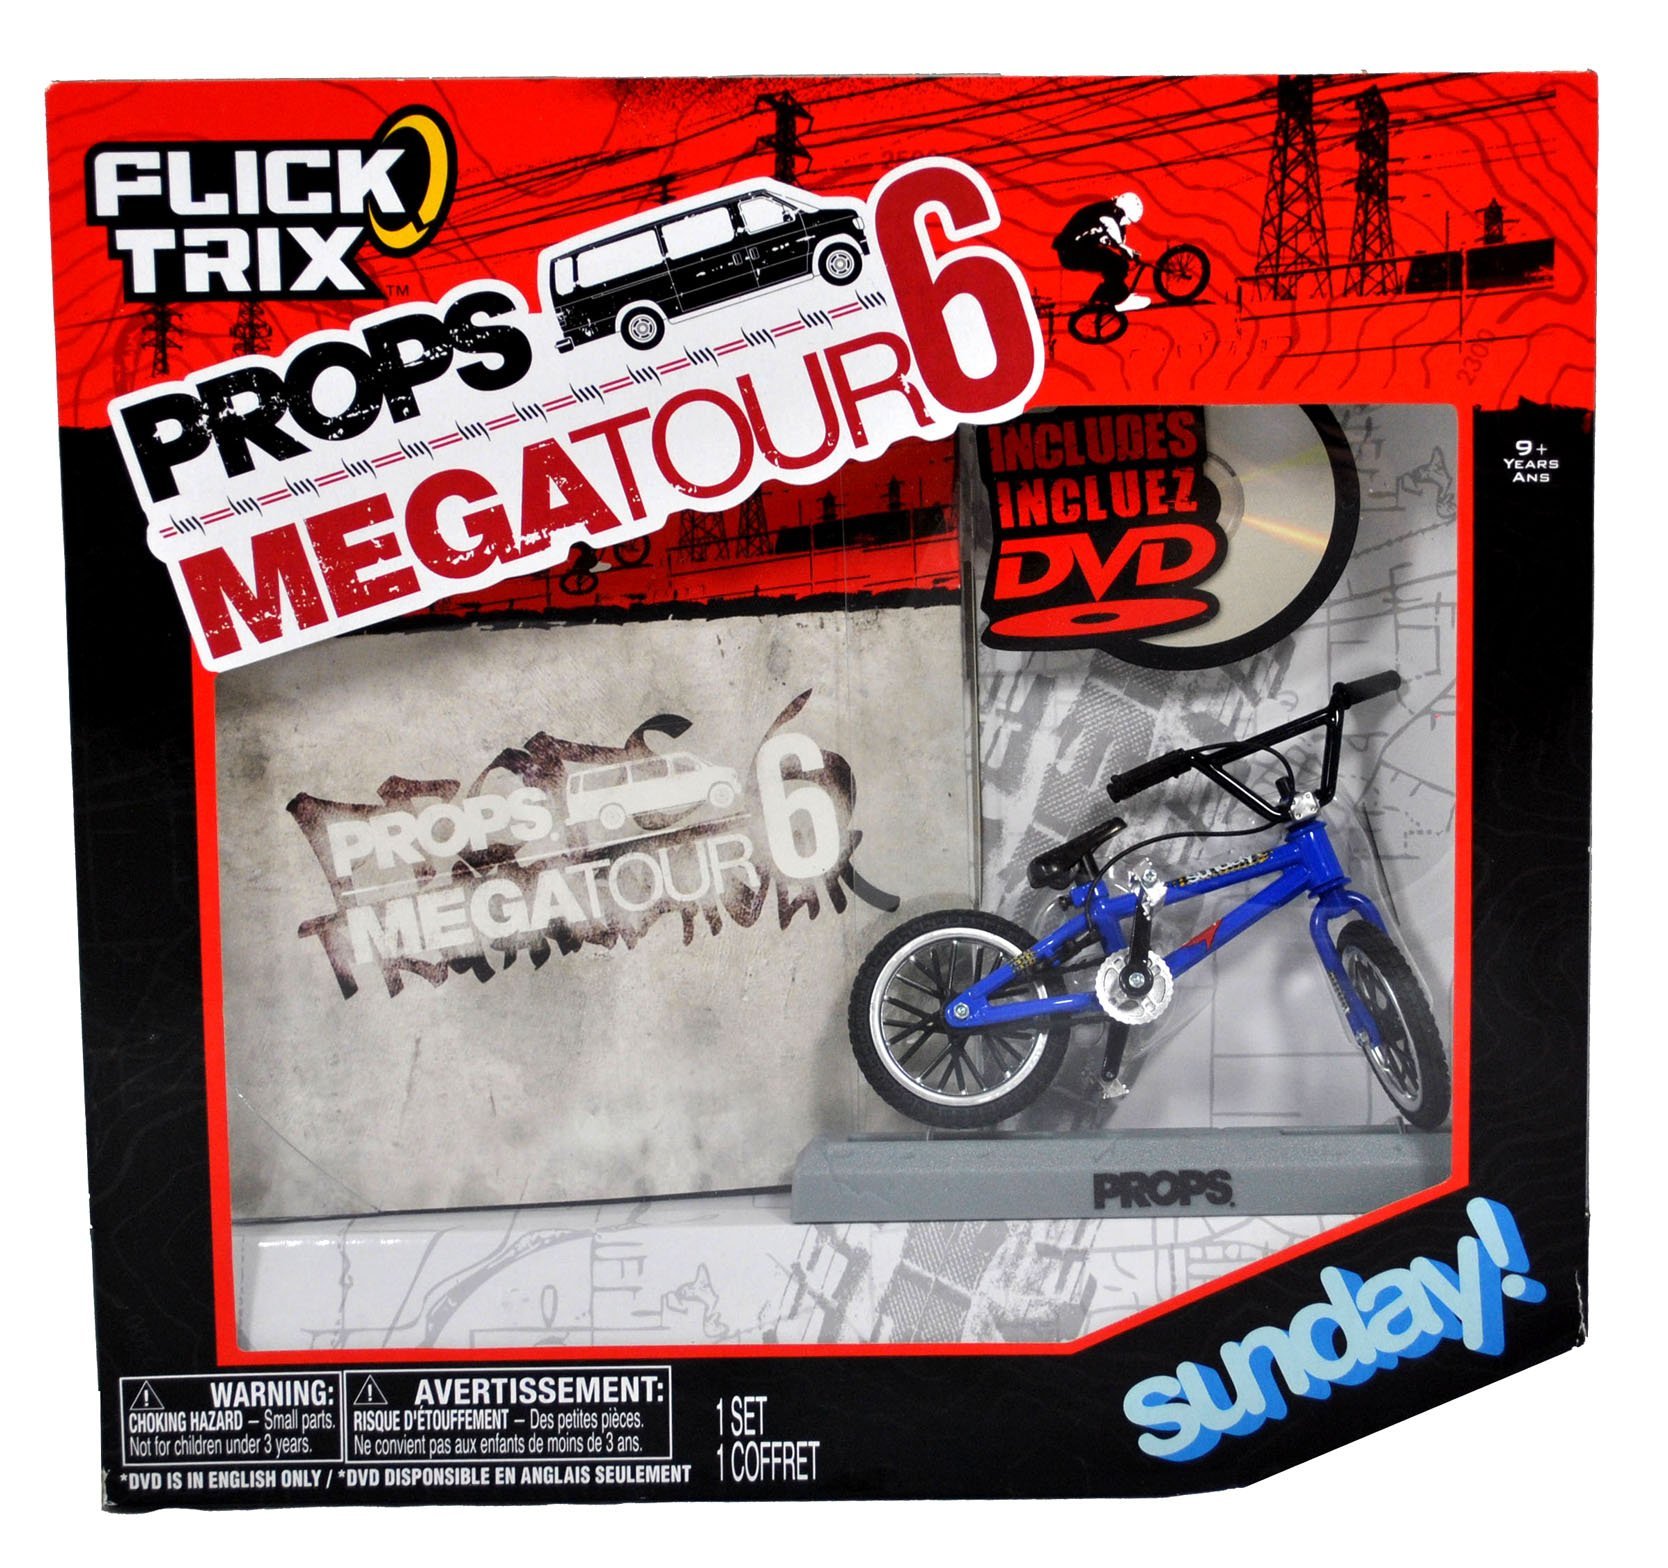 Spinmaster Flick Trix Fingerbike ''Real Bikes, Unreal Tricks'' BMX Bicycle Miniature Set - Blue Color SUNDAY! Bike with Display Base and DVD Props ''Props Mega Tour 6''